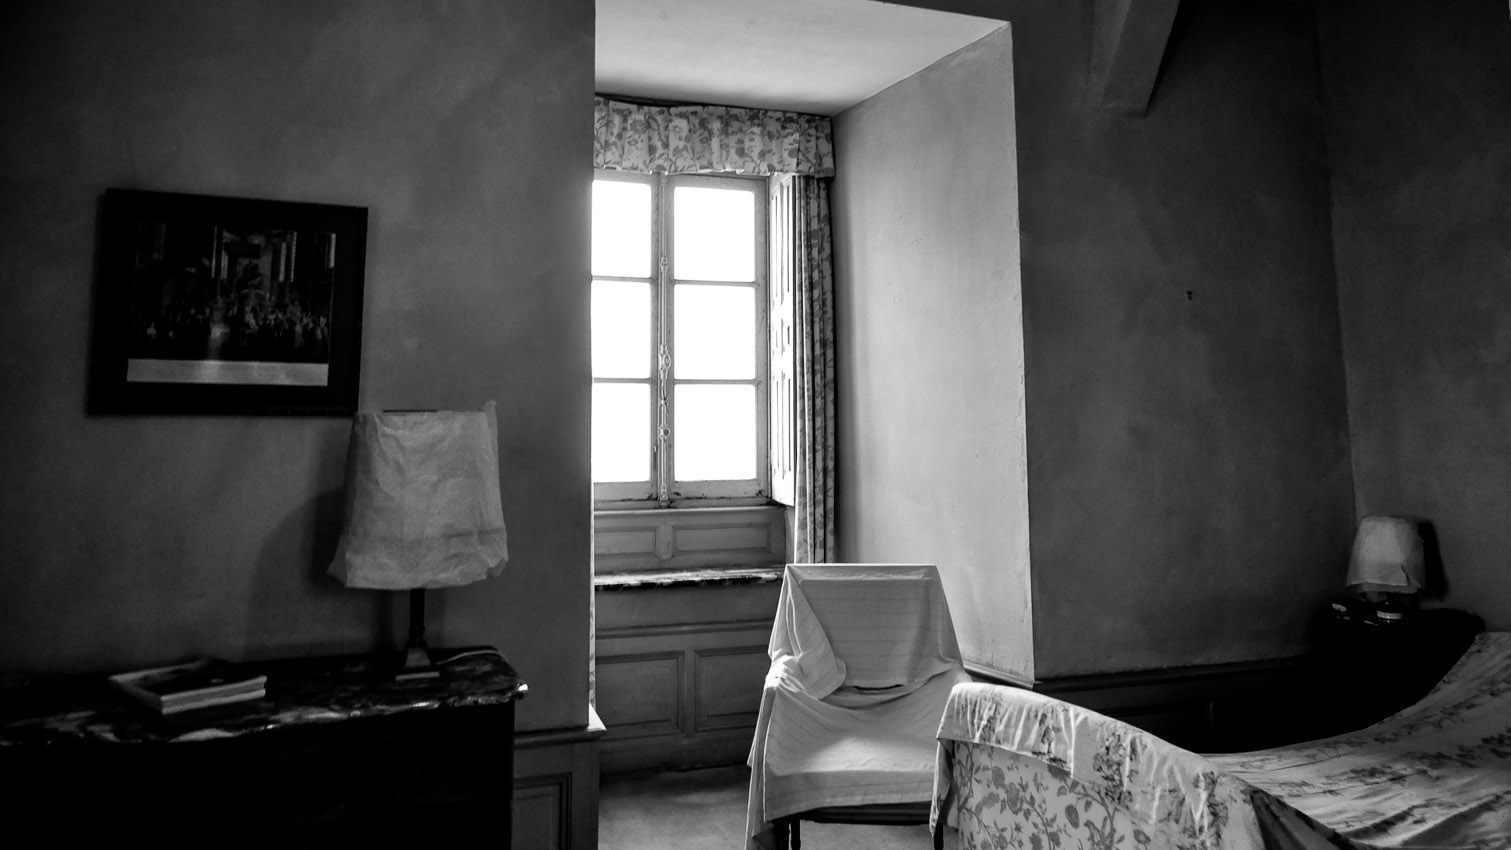 37-hotel-chambre-room-location-decors-film-cinema-photo-belgium-bruxelles